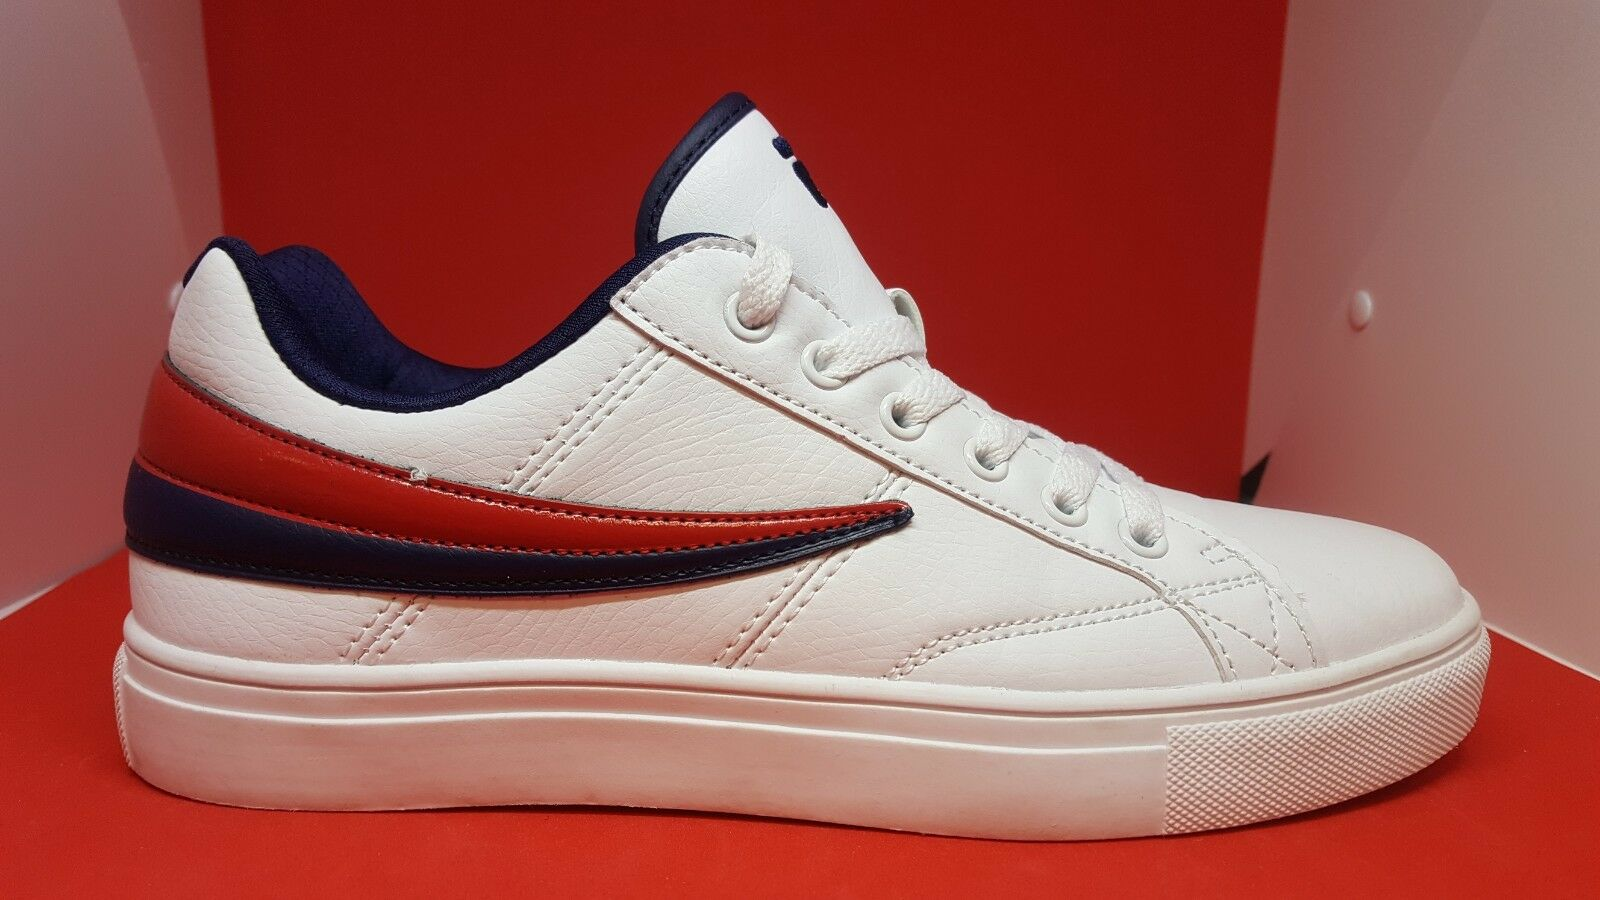 Fila damen Smokescreen Turnschuhe retro schuhe classic fashion sport gym run sz 8